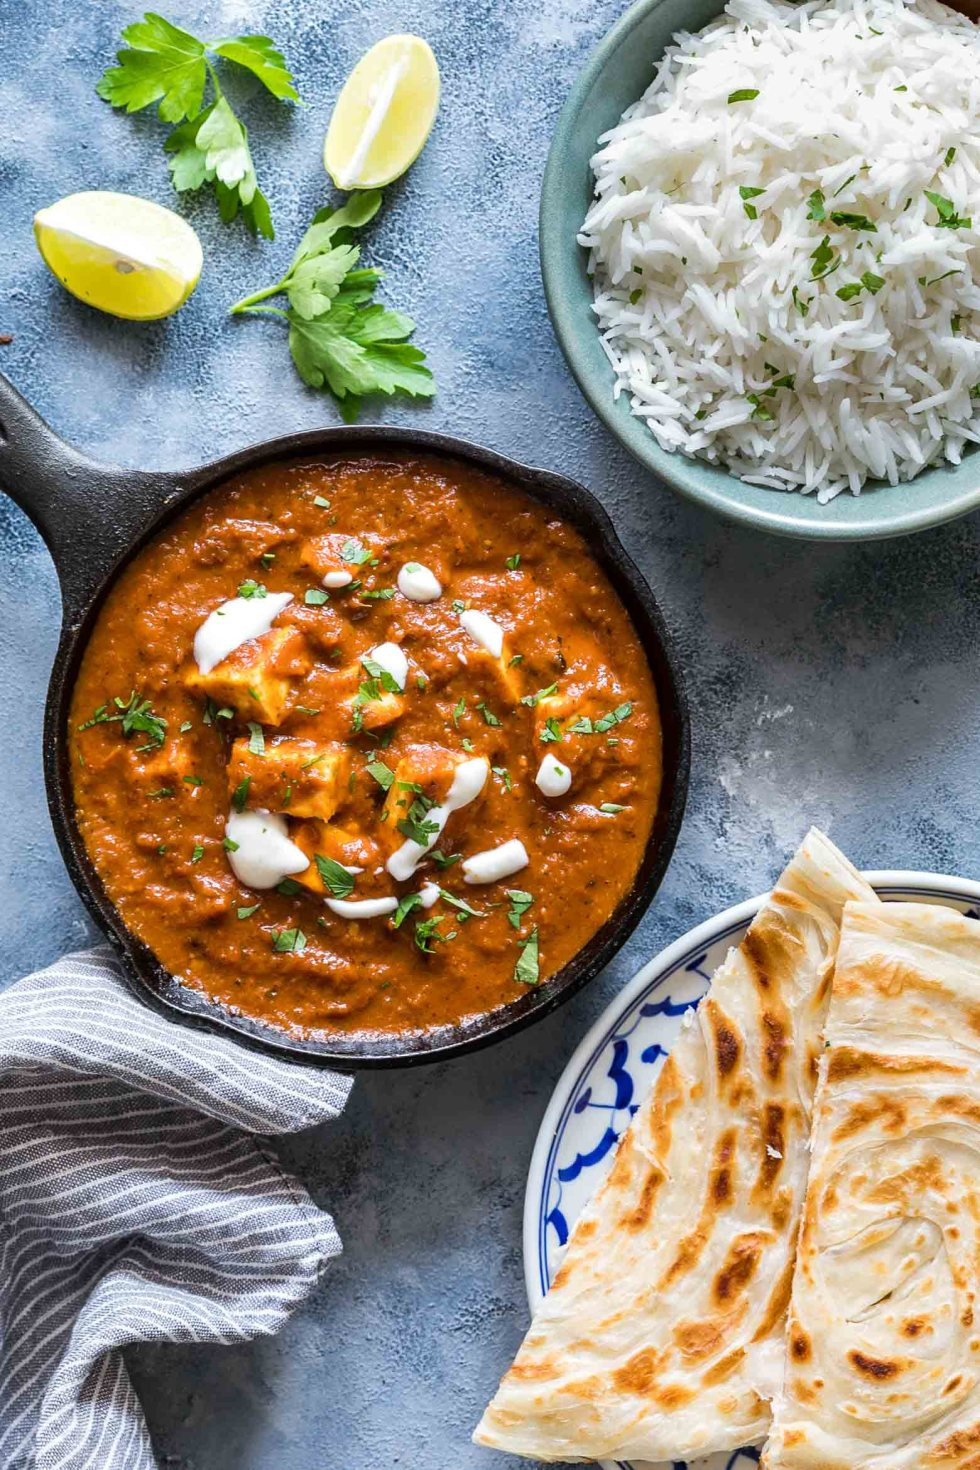 An easy recipe for the perfect restaurant style paneer butter masala for all you paneer (cottage cheese) lovers! I love serving this with parathas and jeera rice. It's always a hit with family and guests!